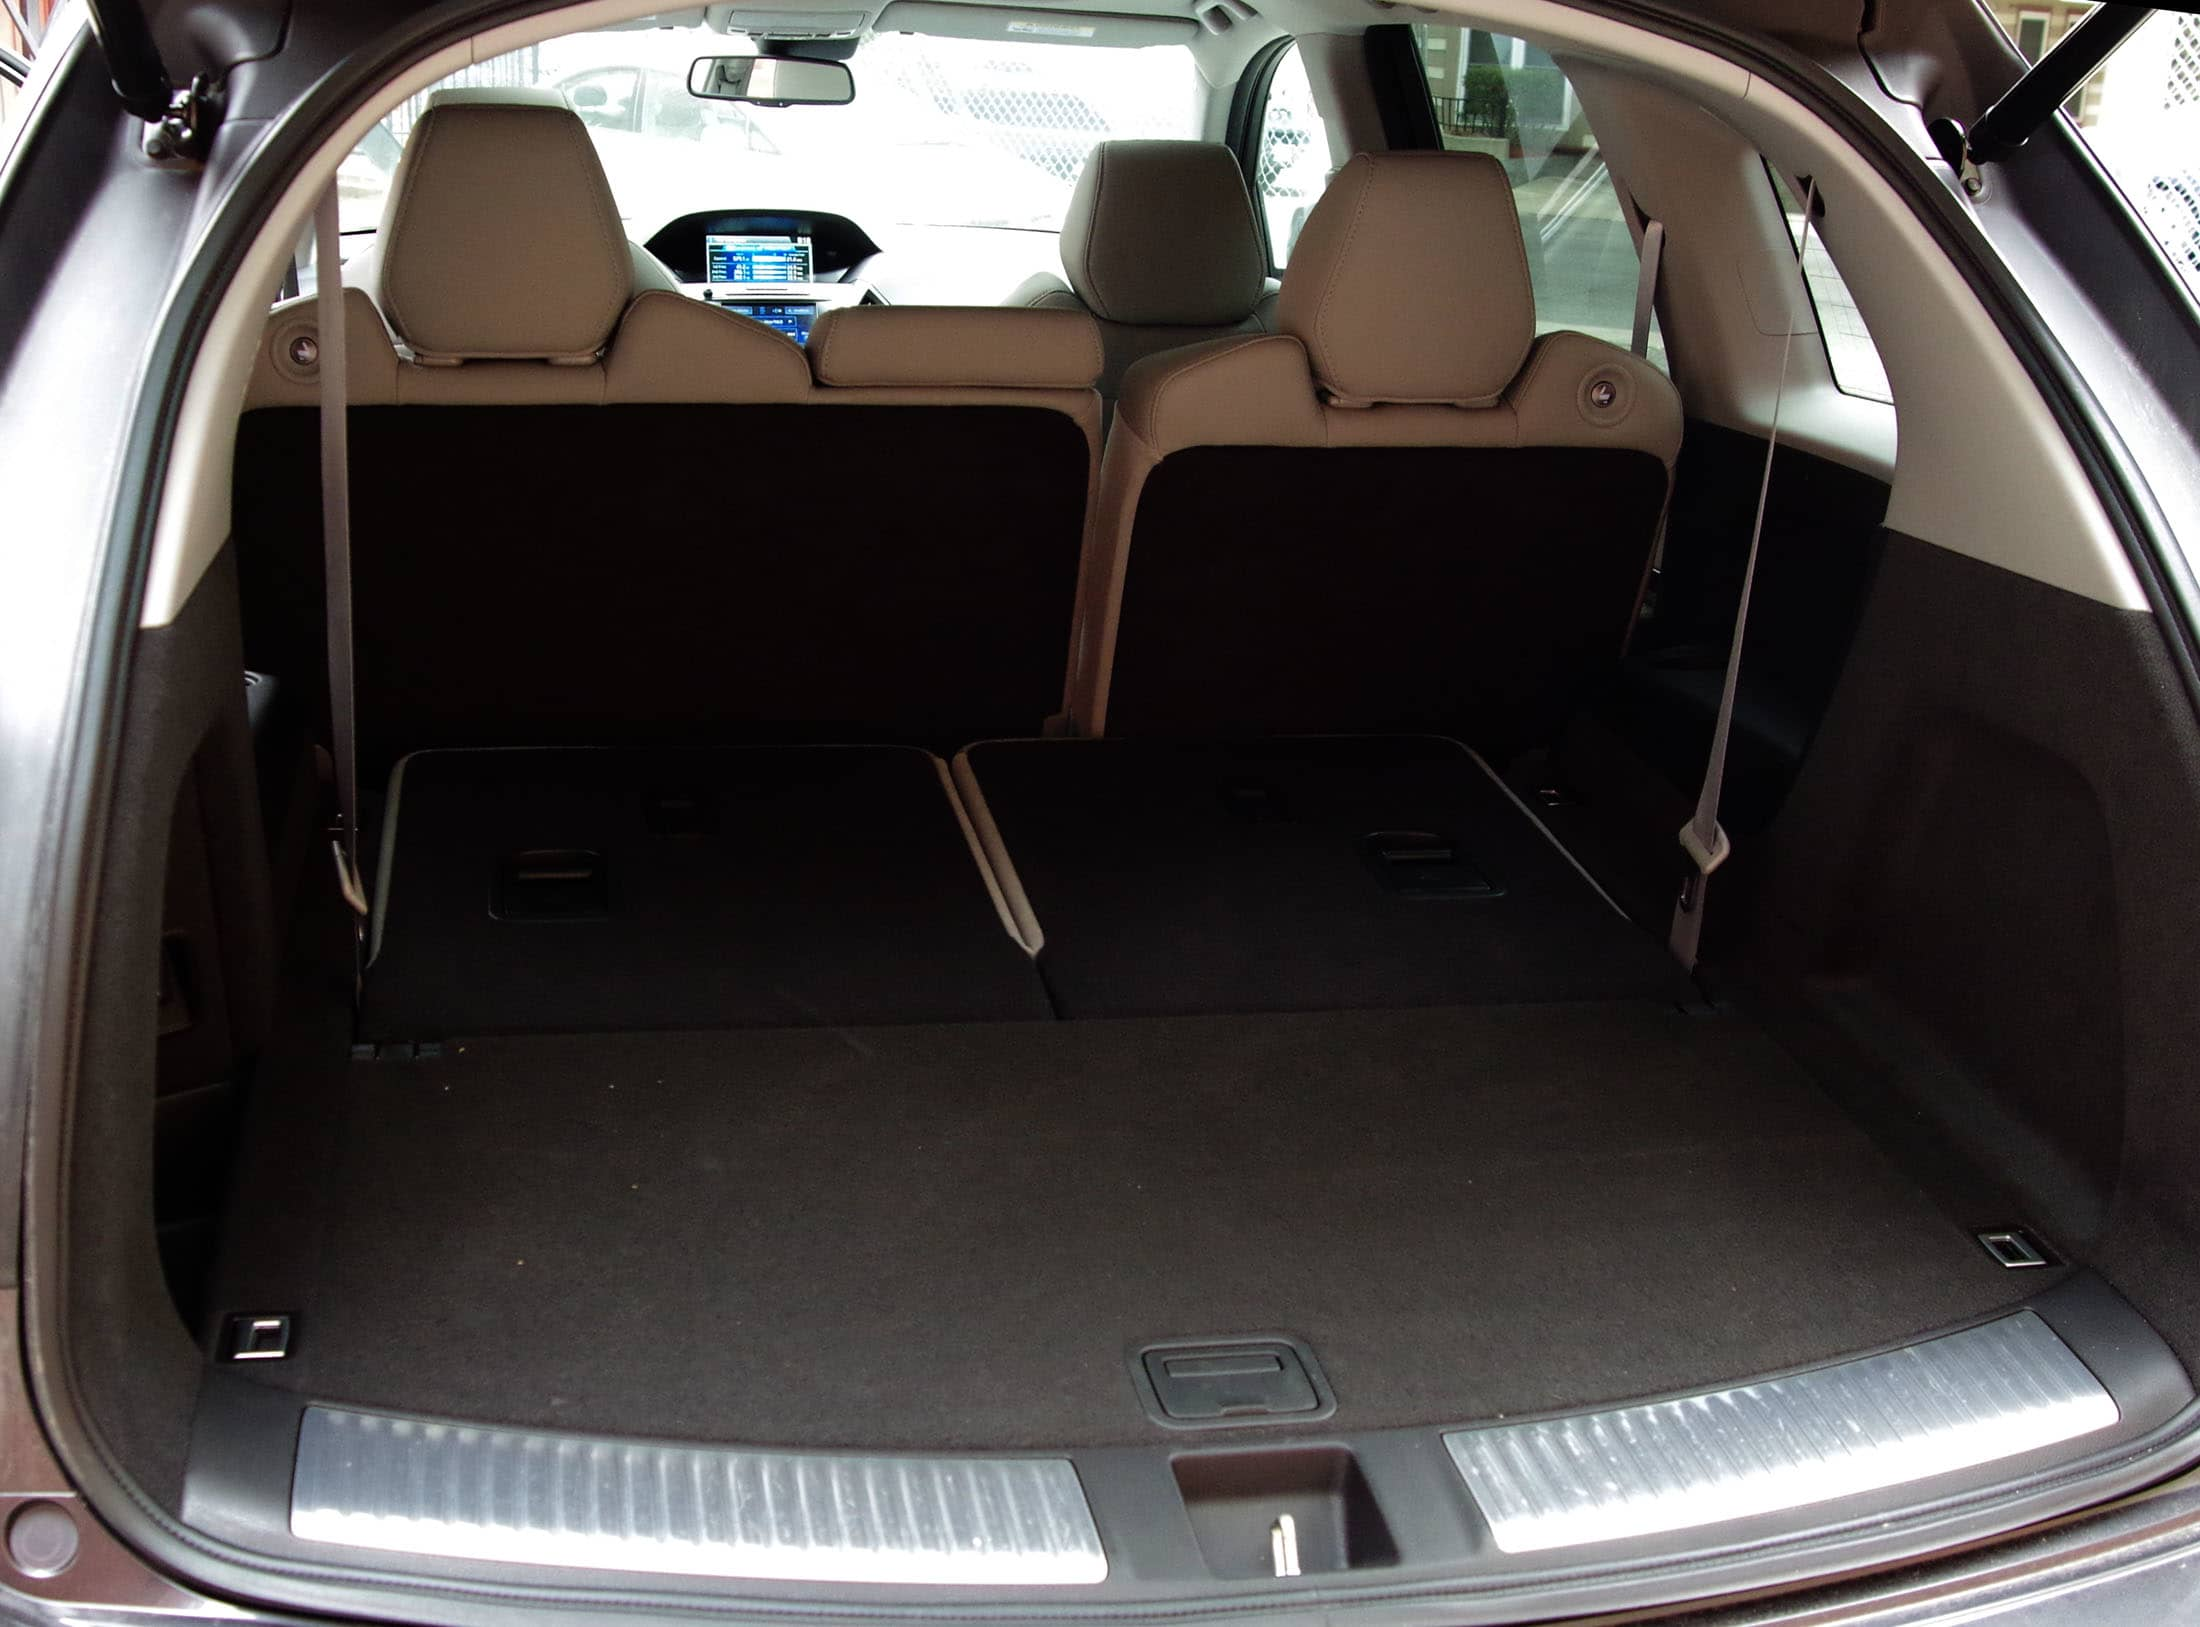 The 2014 Acura MDX's rear cargo area with the third row folded down.